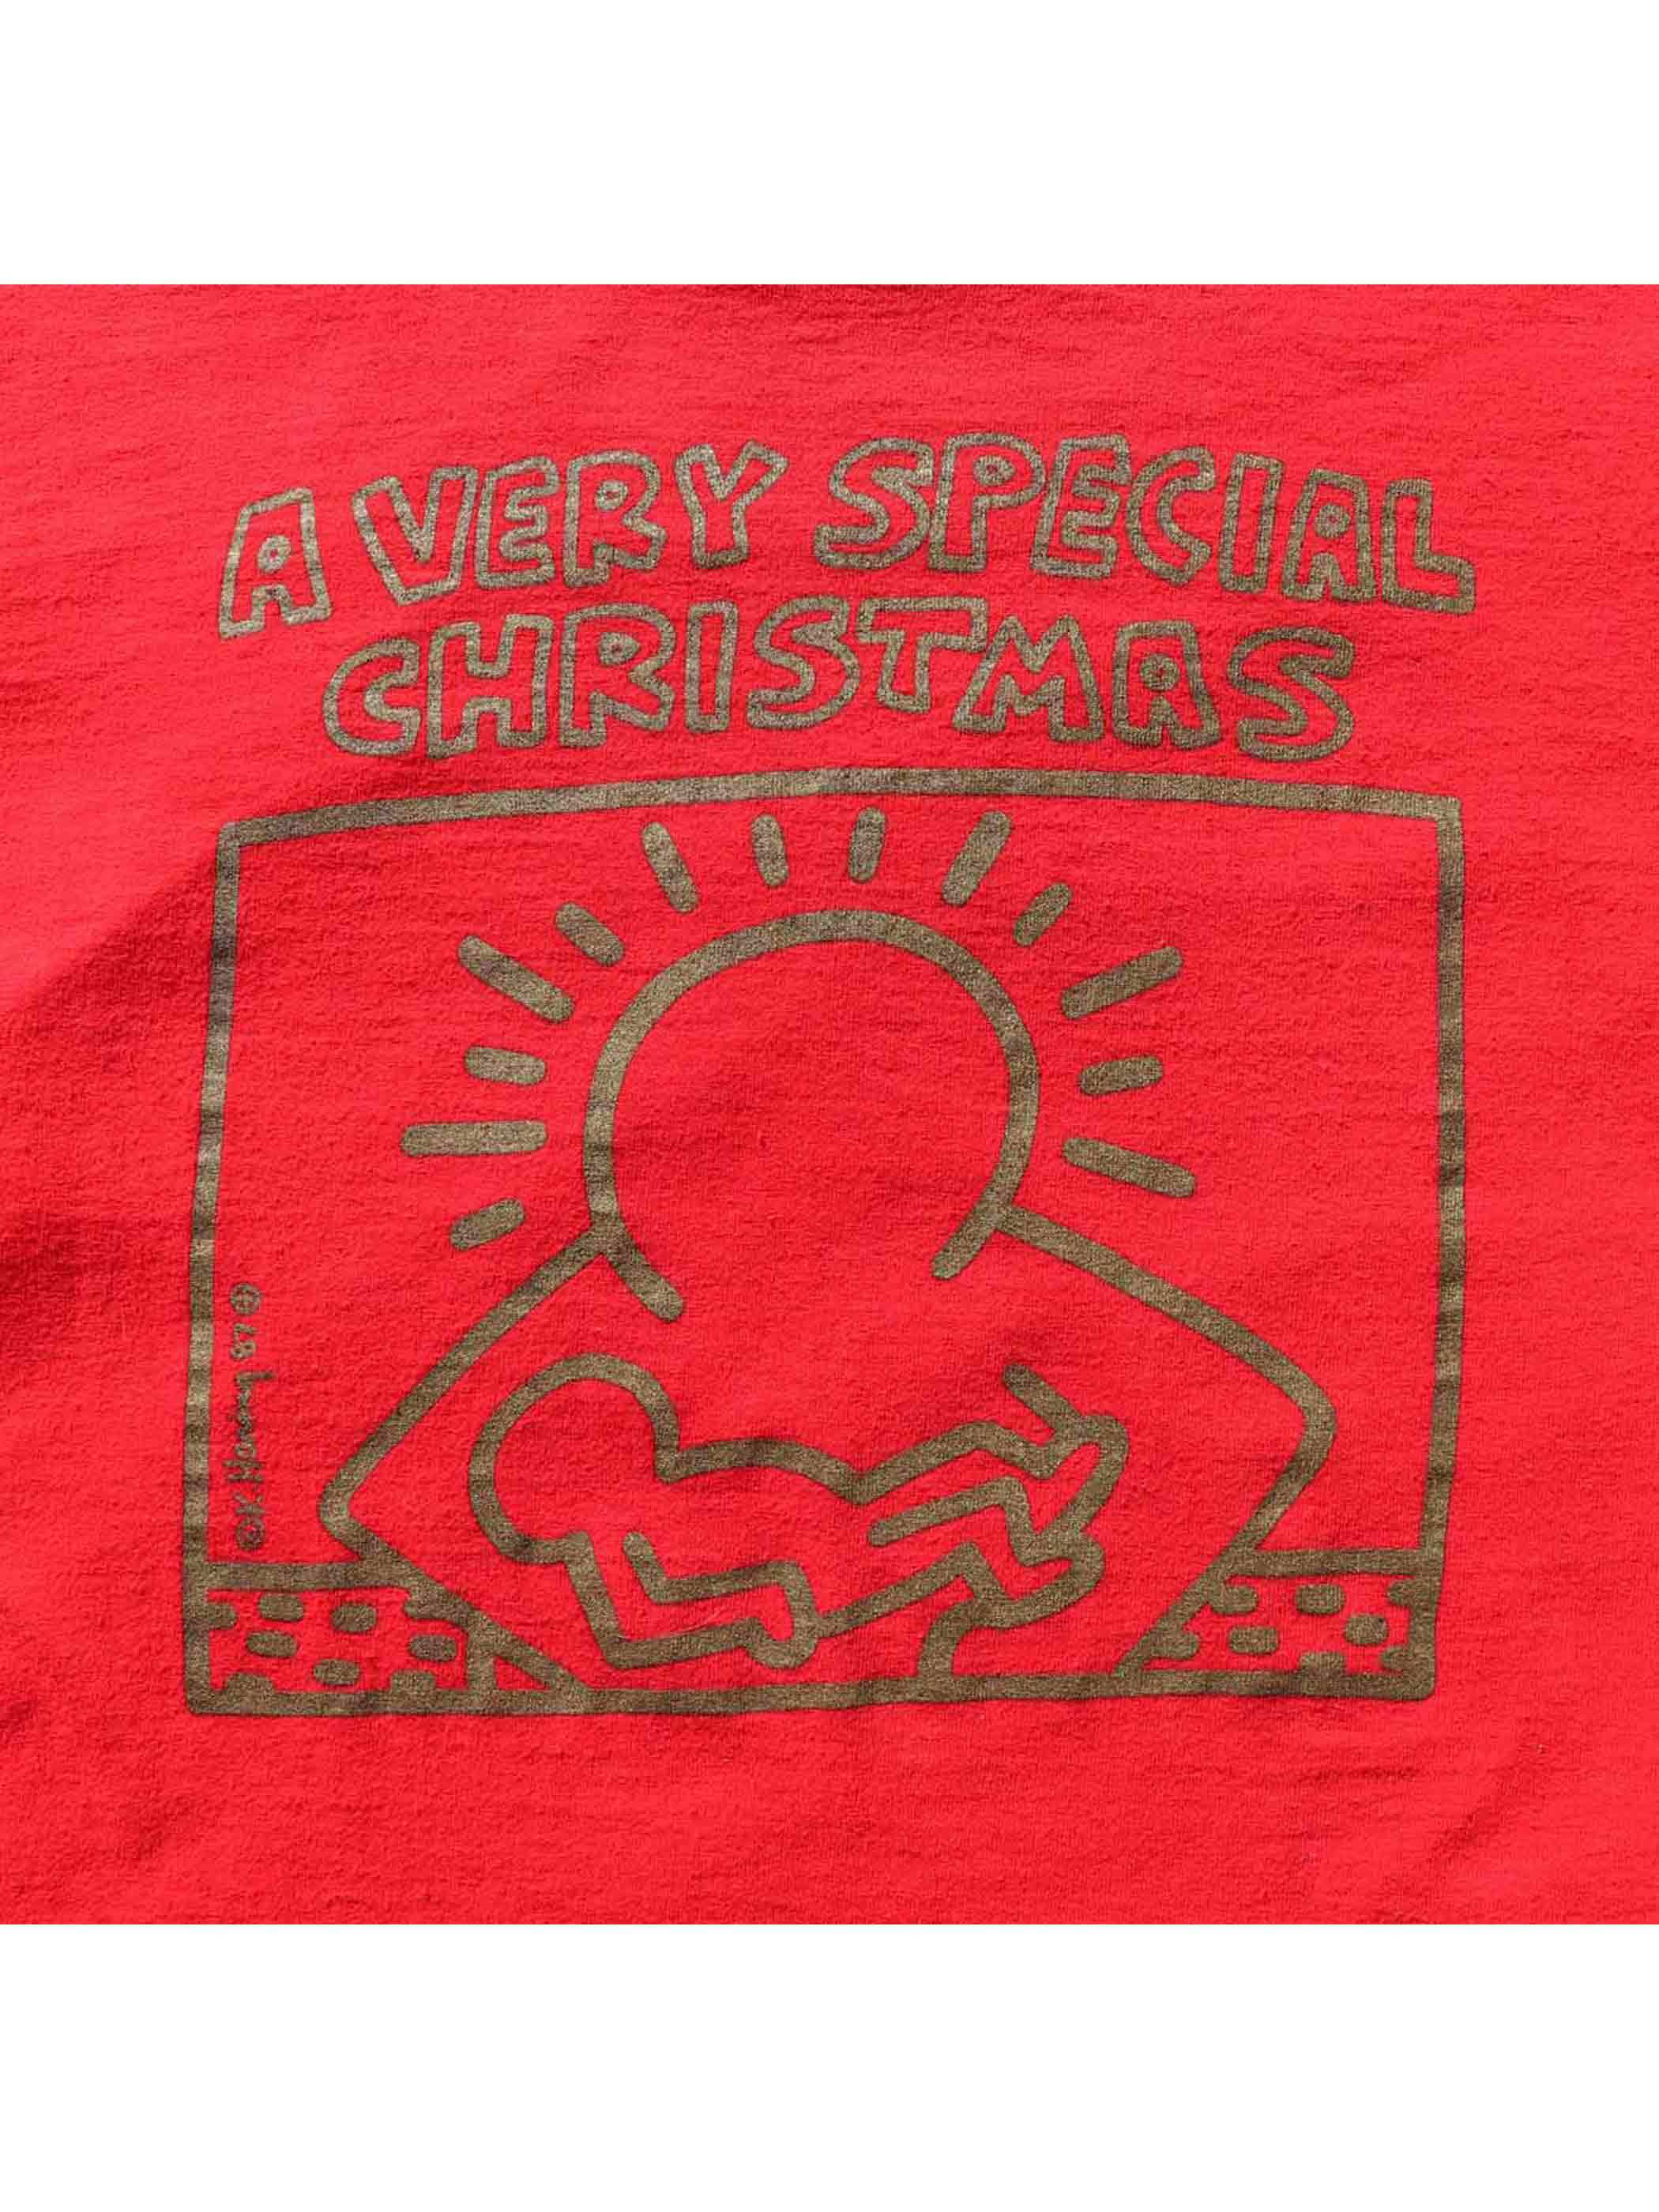 "80's ""A VERY SPECIAL CHRISTMAS"" キース・ヘリング ゴールドプリント プロモTシャツ [L]"